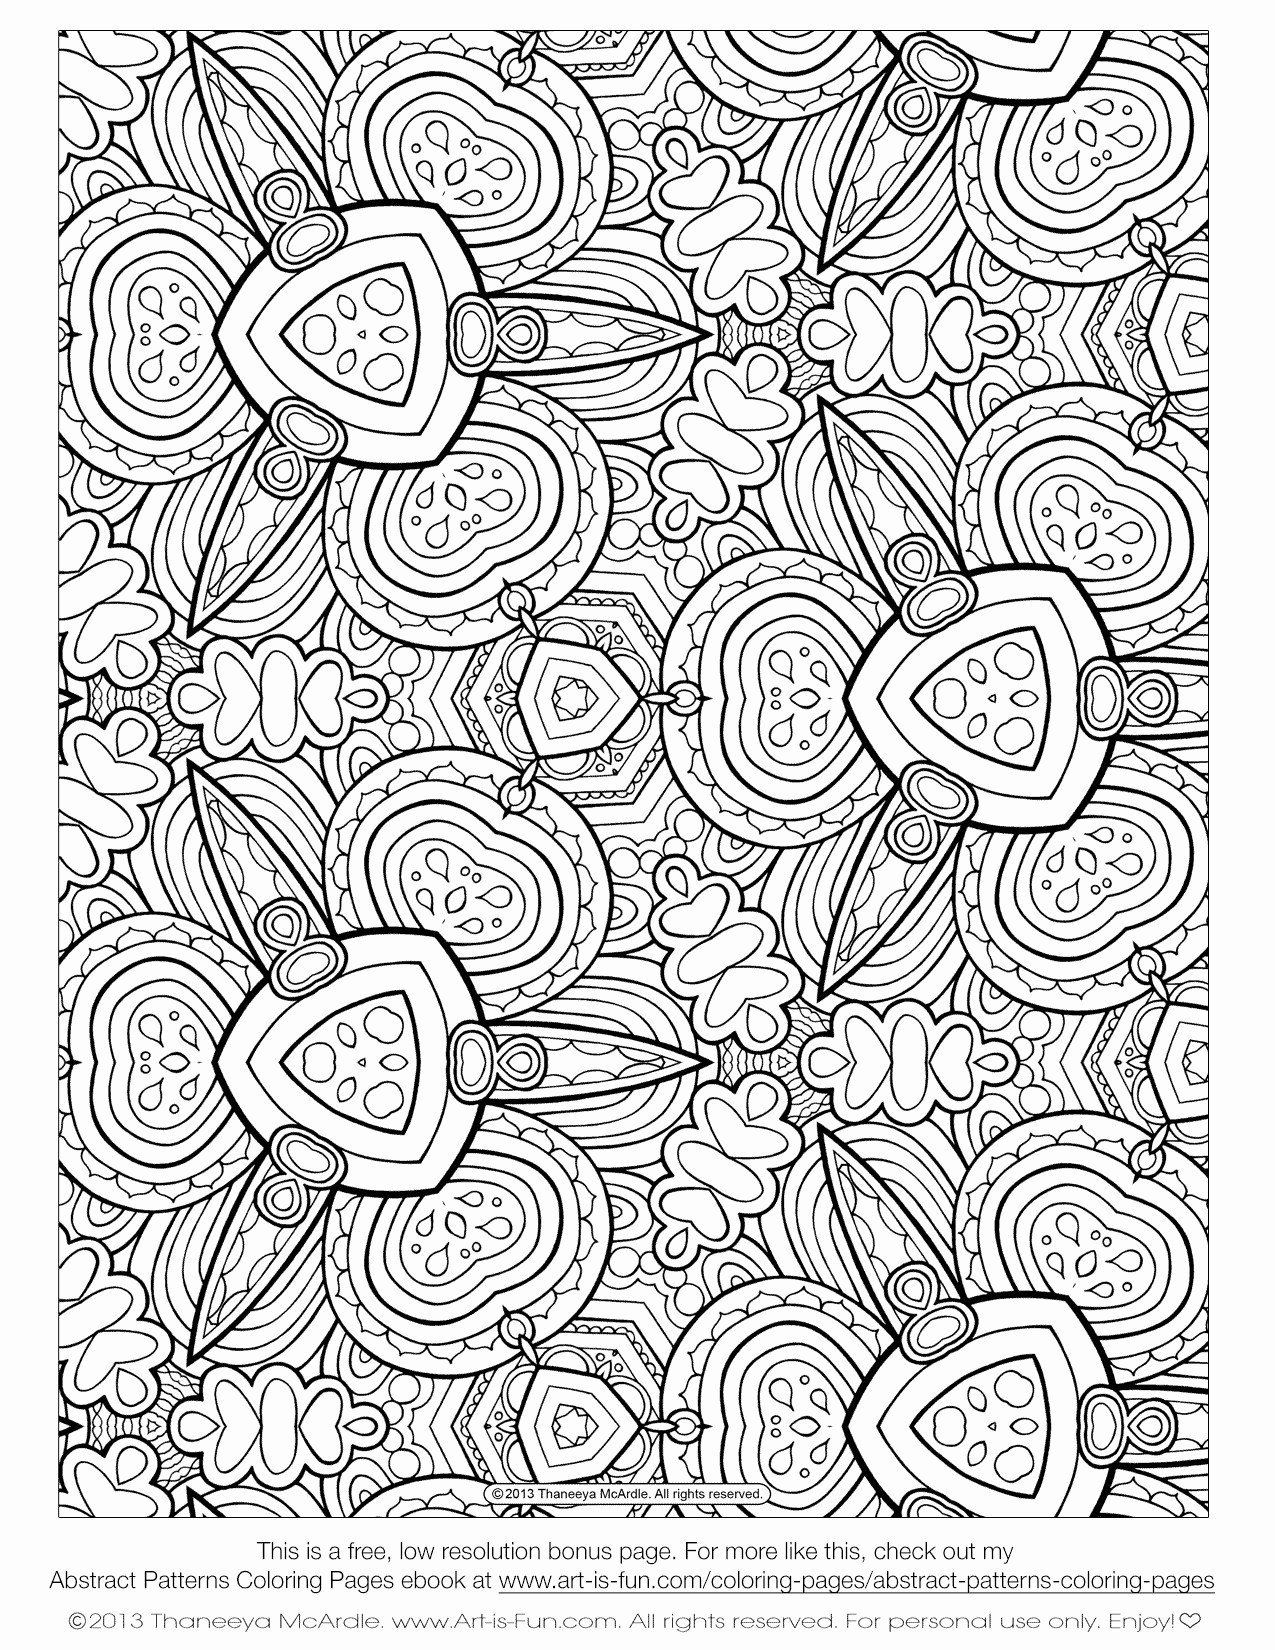 Free Printable Patterns to Color | Pattern Coloring Pages ... | 1650x1275